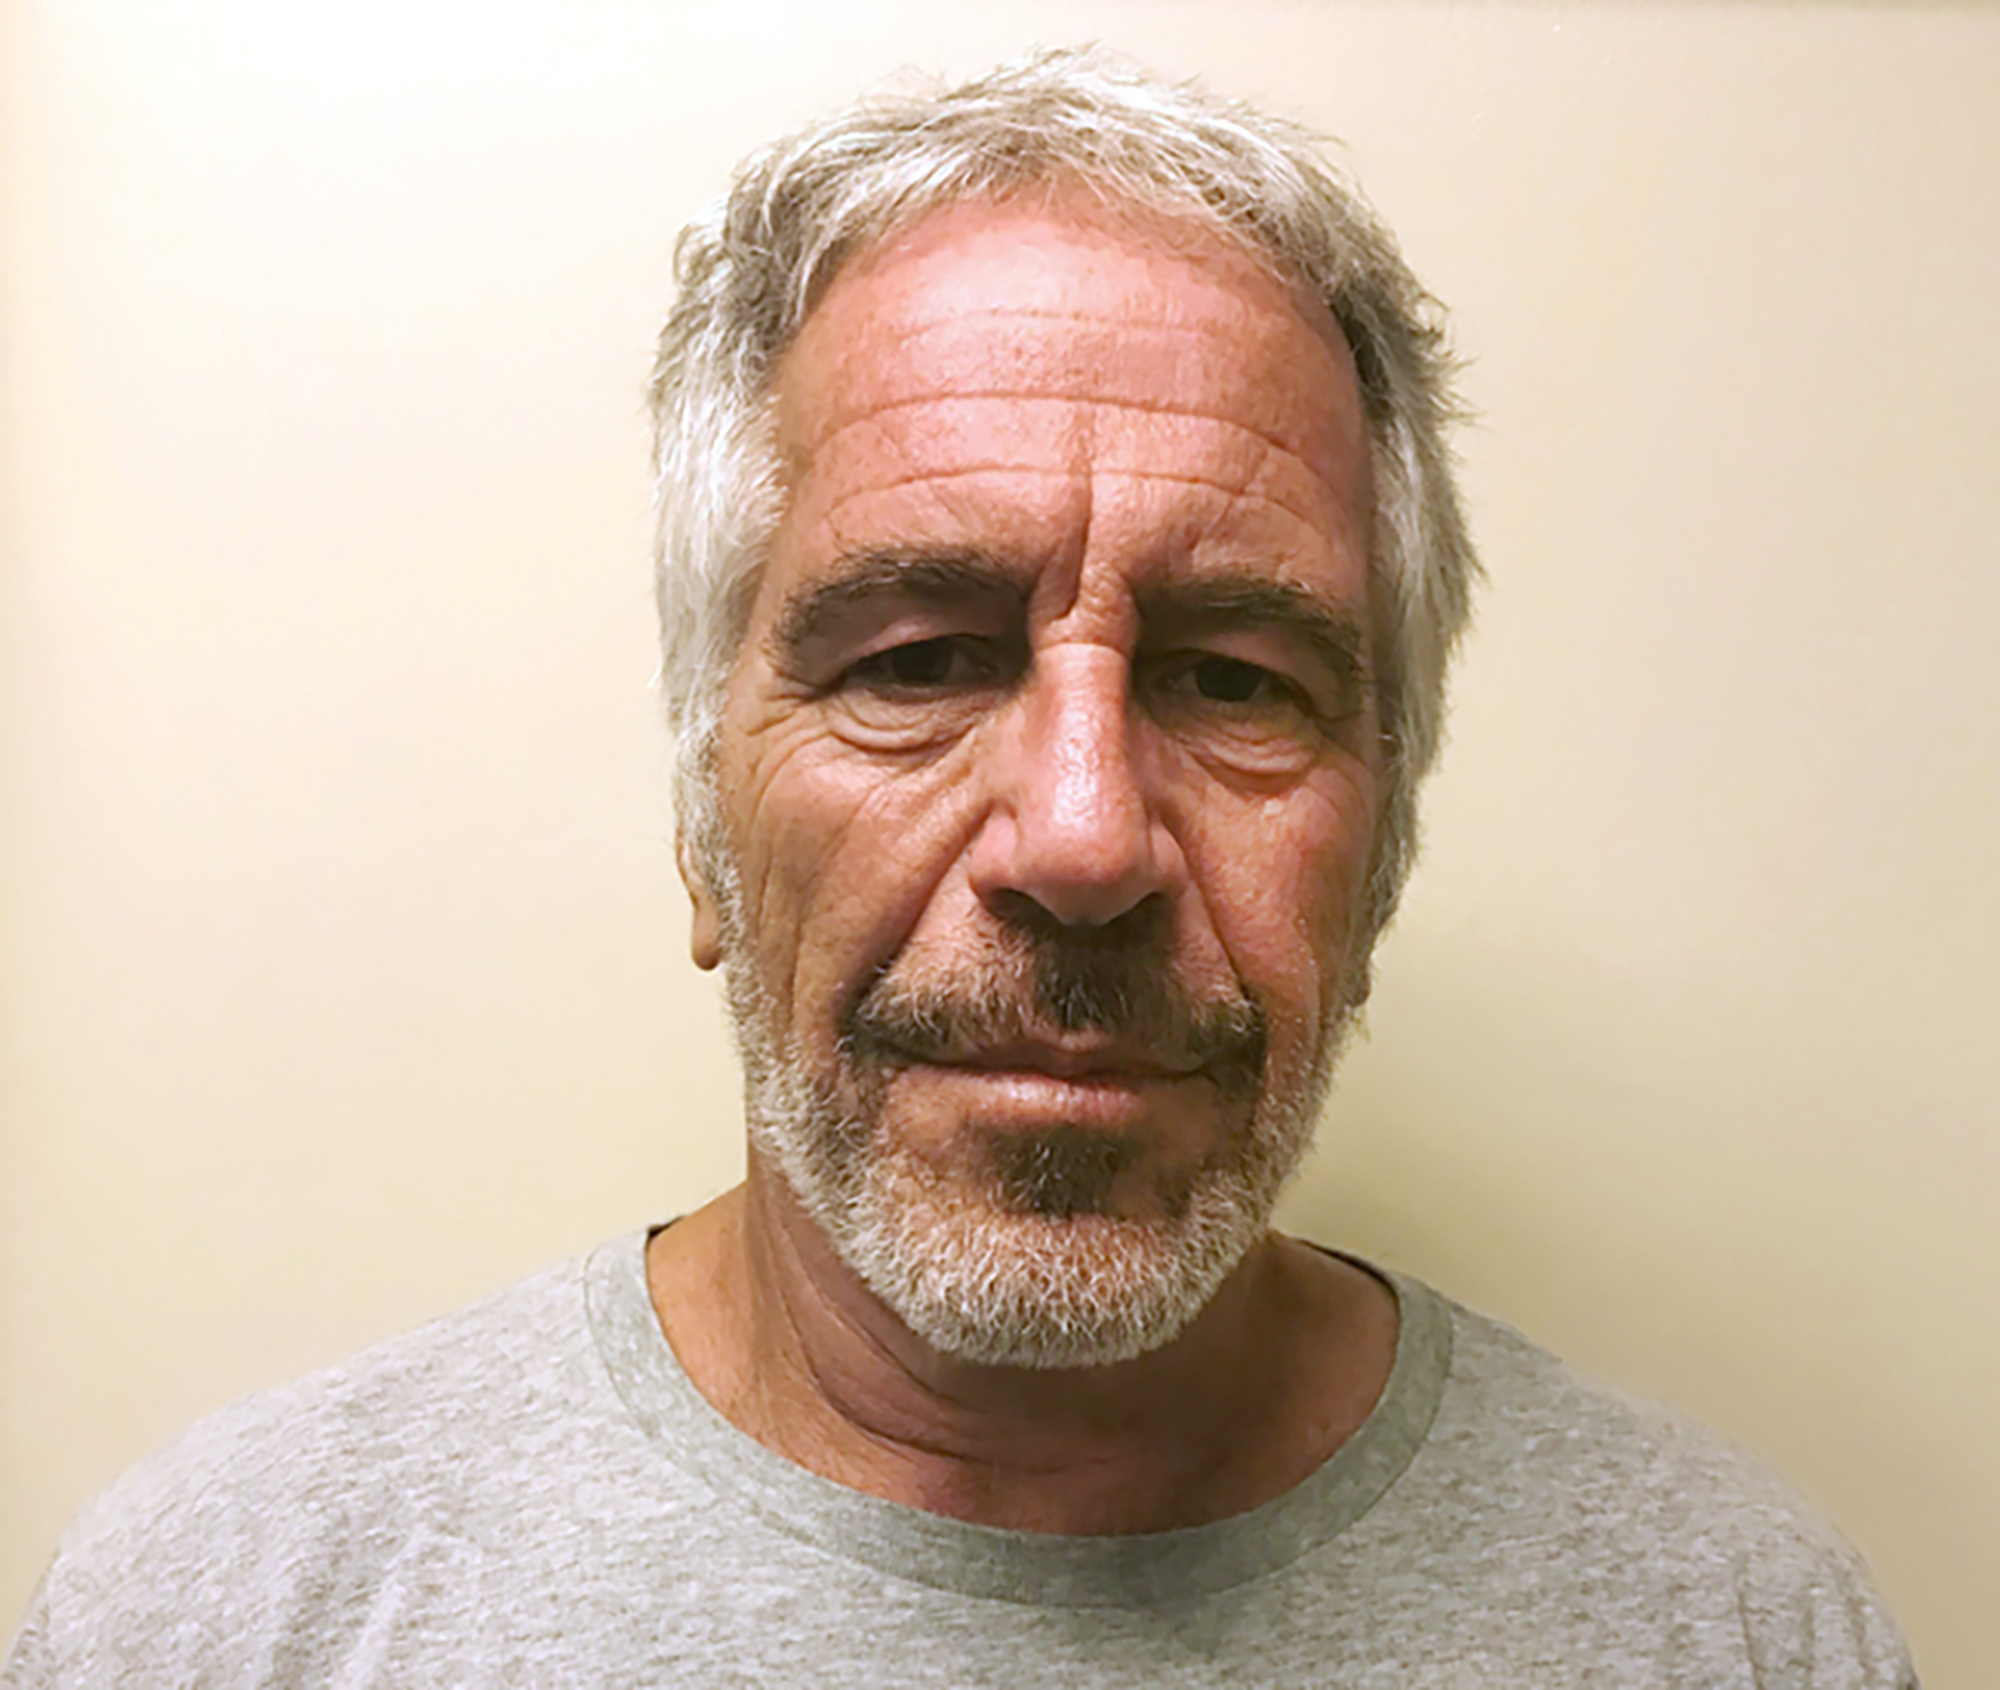 Judge ends case against Epstein, with a nod to the accusers